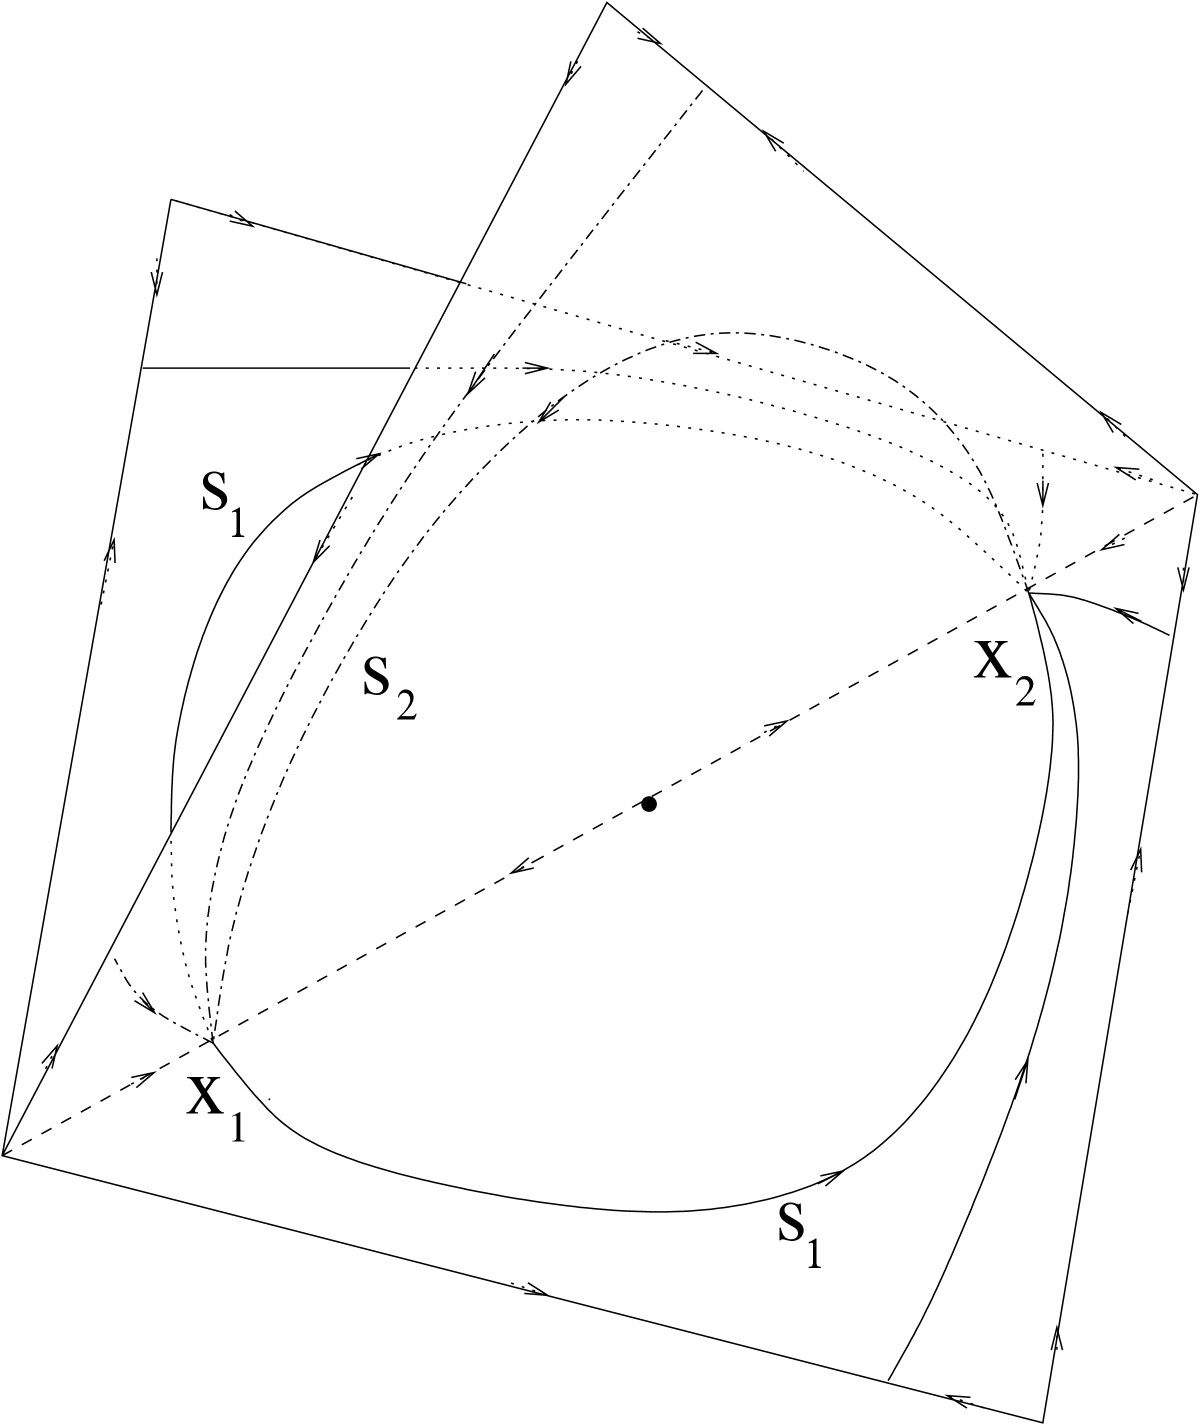 http://static-content.springer.com/image/art%3A10.1186%2F2190-8567-1-13/MediaObjects/13408_2011_Article_14_Fig4_HTML.jpg